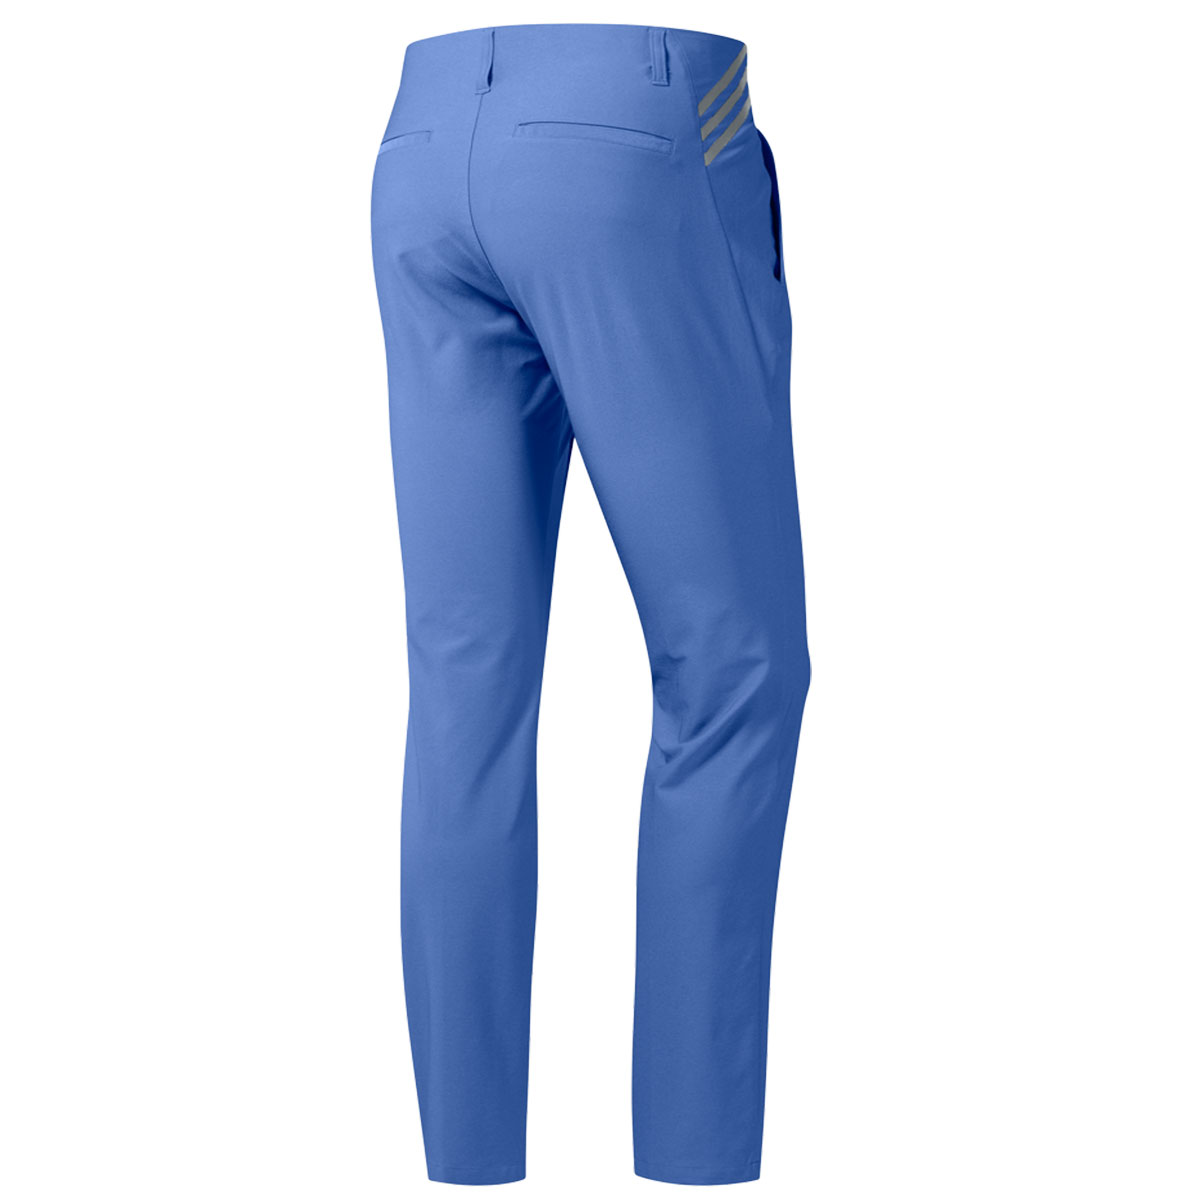 adidas-Golf-Mens-2019-Ultimate365-3-Stripes-Tapered-Water-Resistant-Trousers thumbnail 11